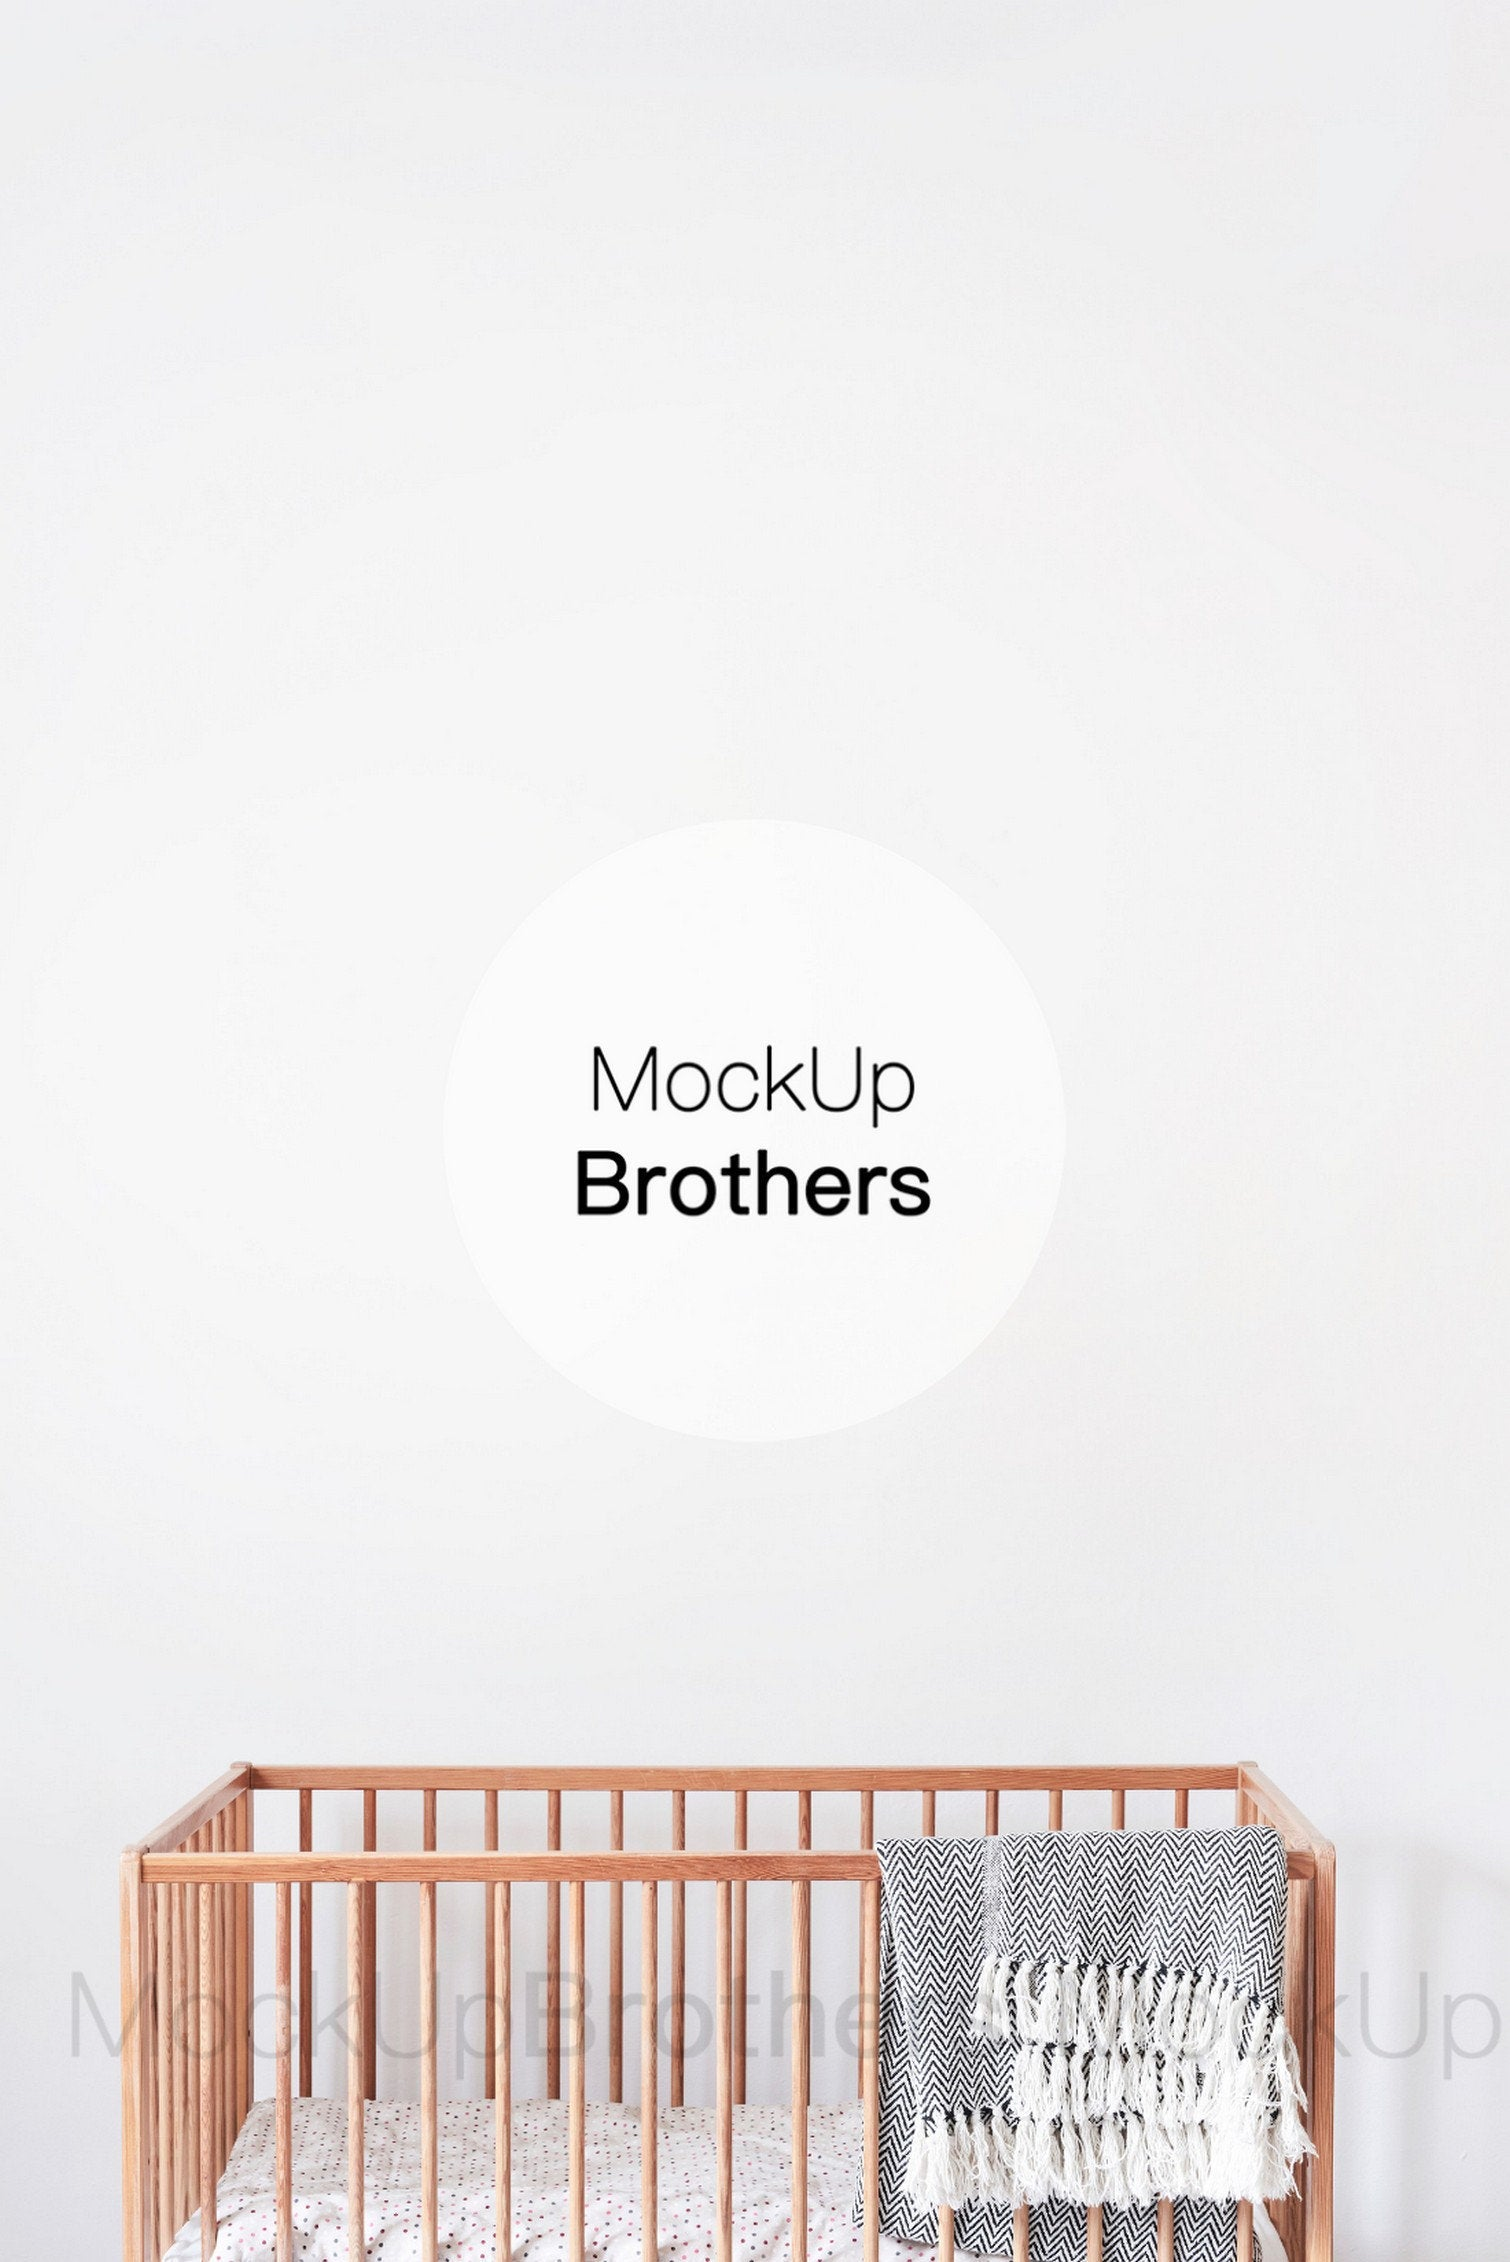 Nursery wall stock photo by Mockup Brothers